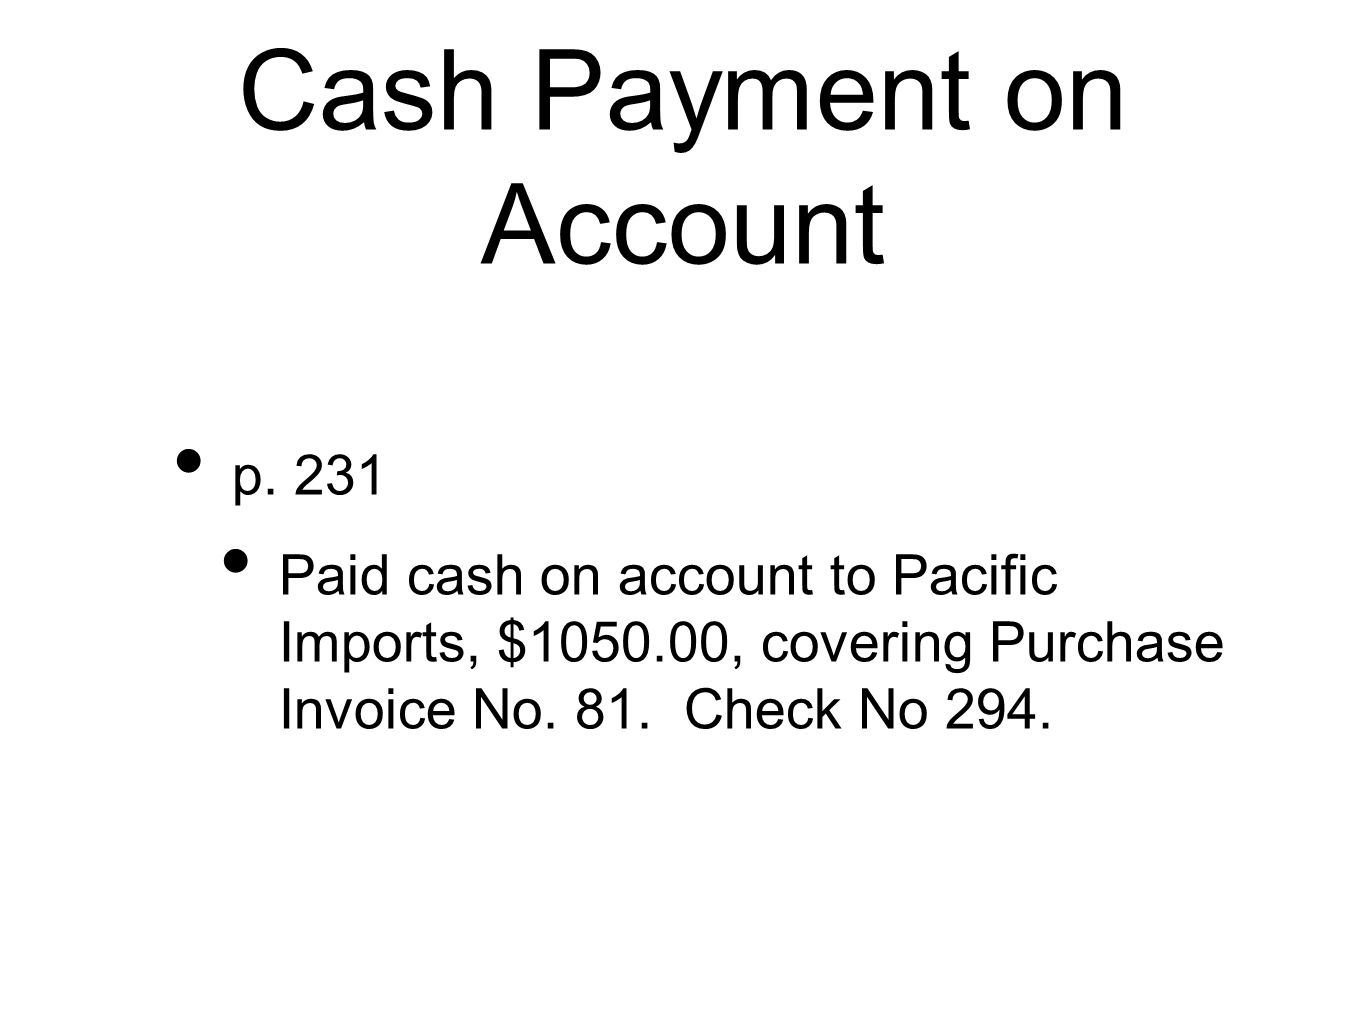 Cash Payment on Account p. 231 Paid cash on account to Pacific Imports, $1050.00, covering Purchase Invoice No. 81. Check No 294.